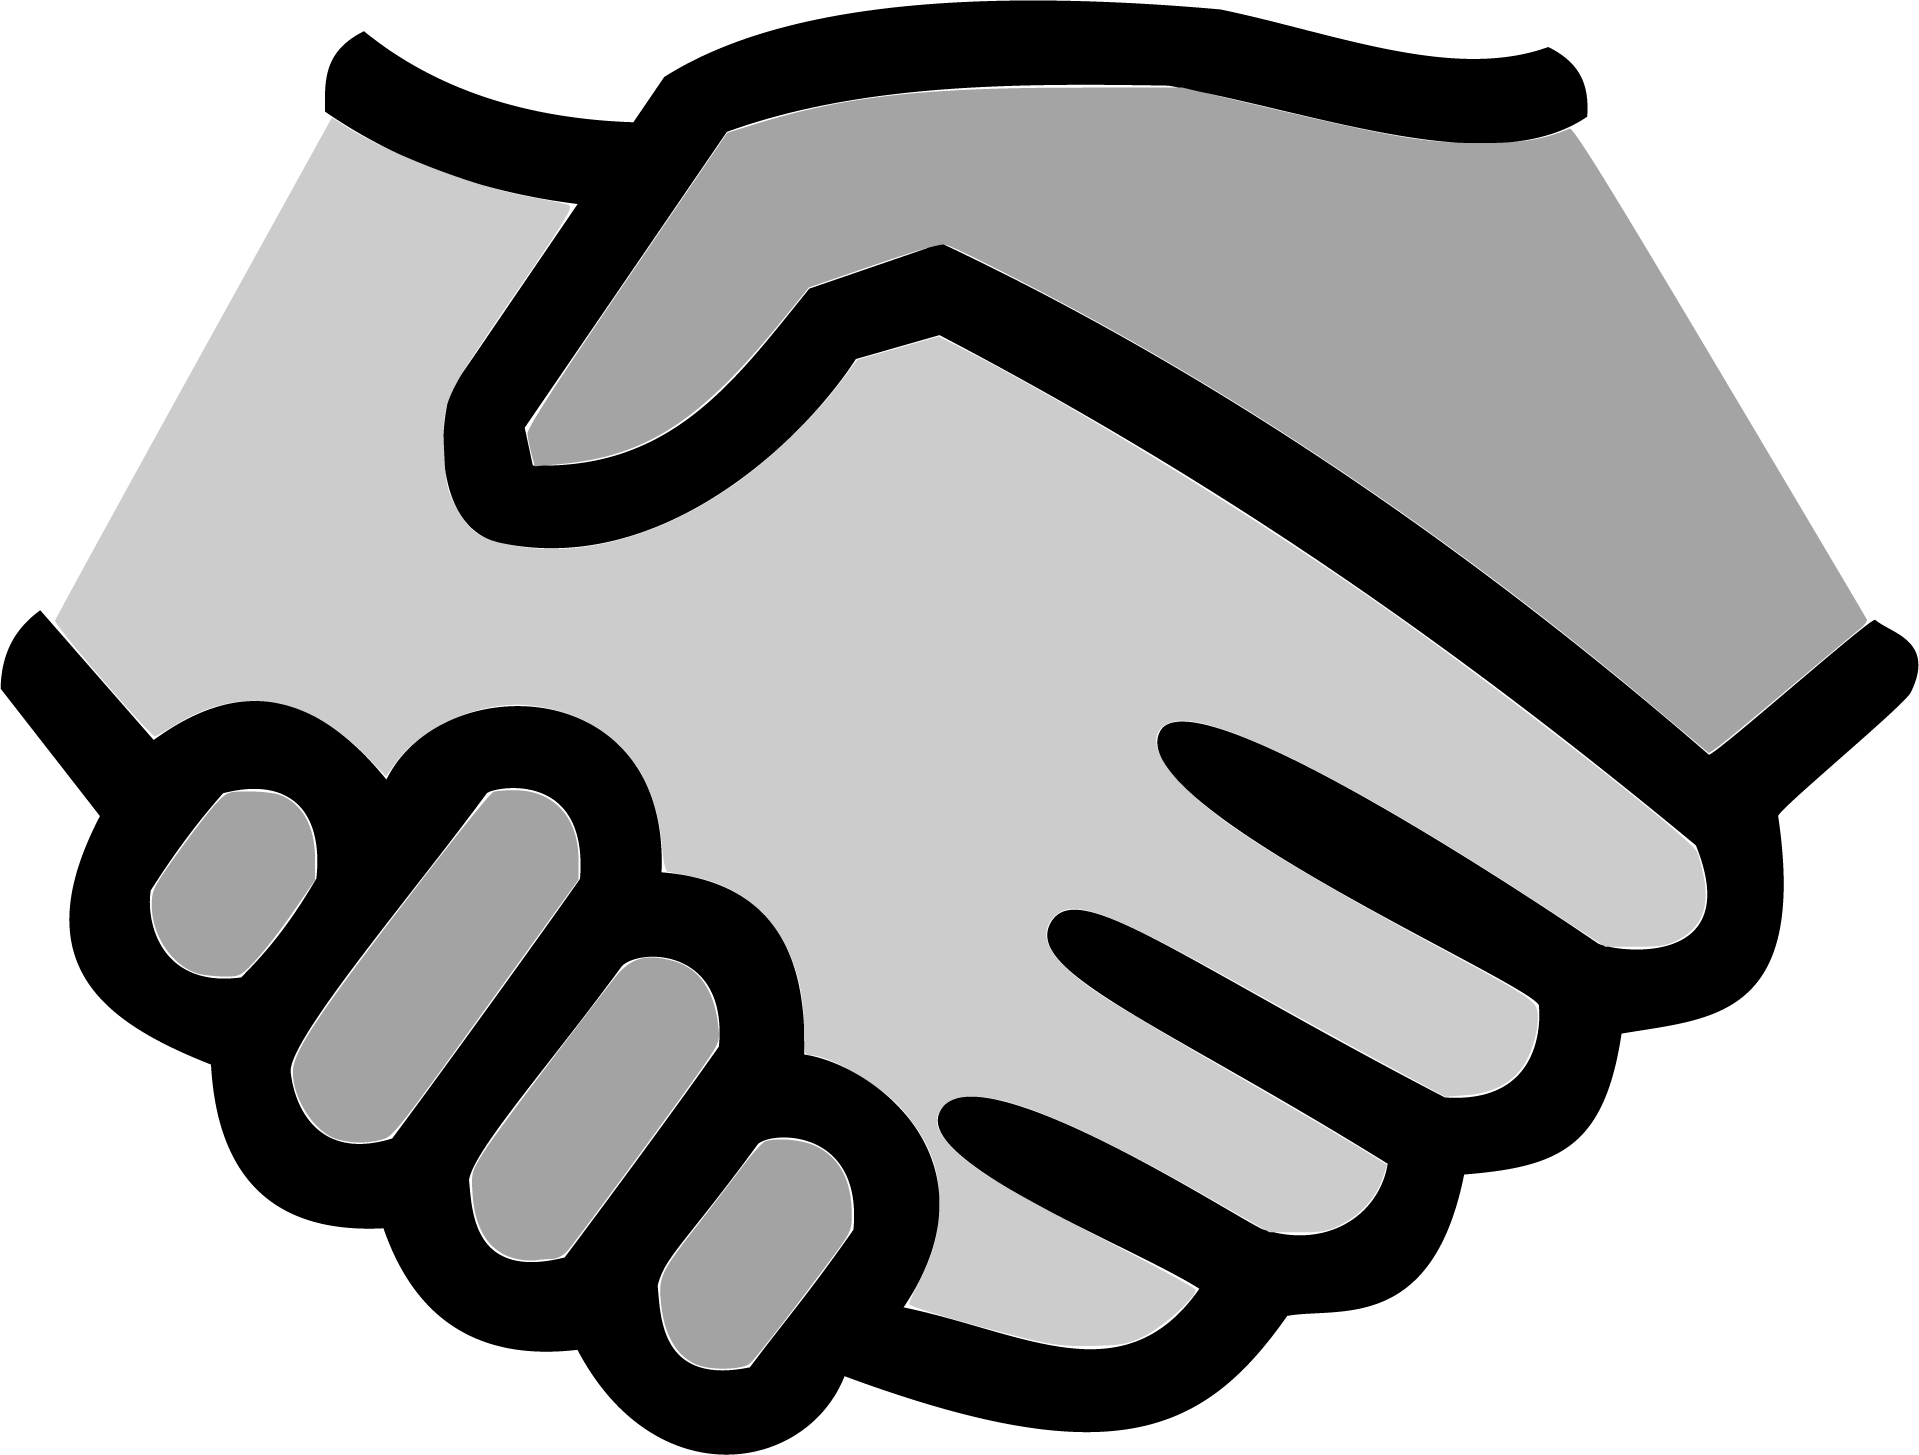 Team the collaboration in. Handshake clipart joint venture